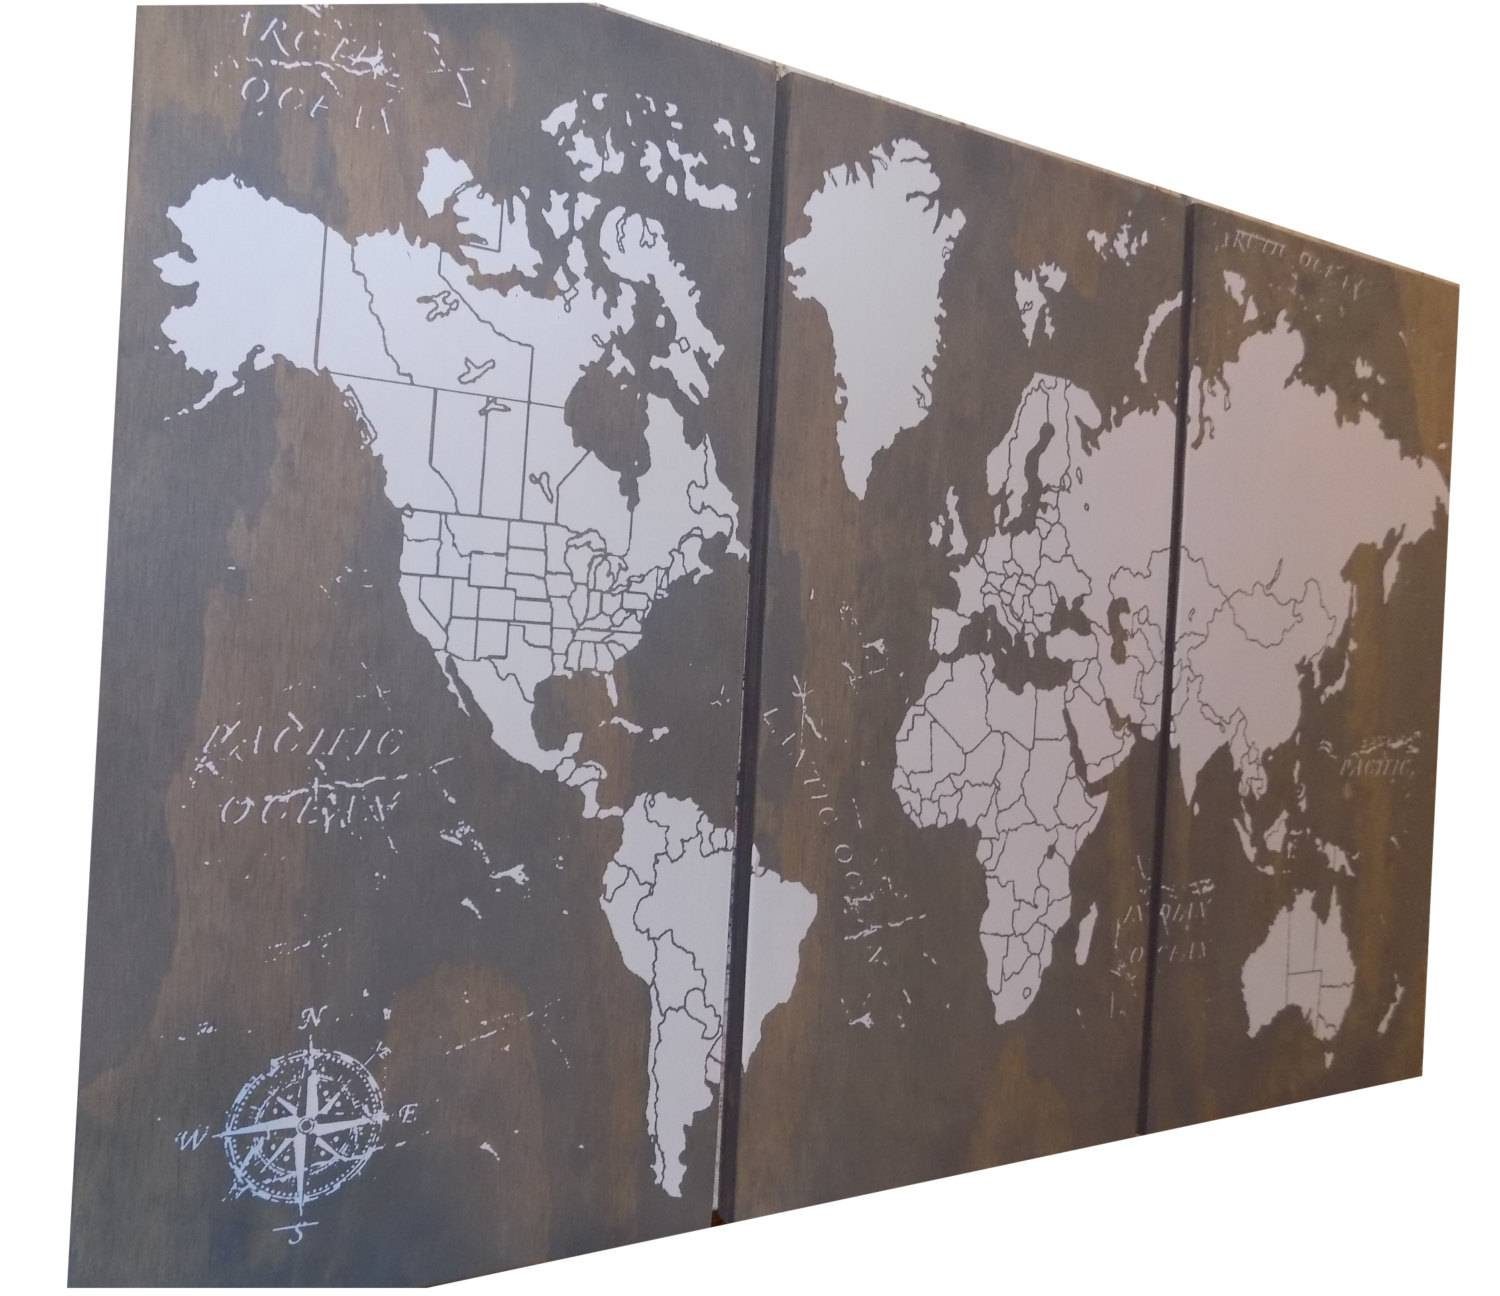 Extra Large World Push Pin Travel Map With Us Borders 3' Throughout 2018 Travel Map Wall Art (Gallery 15 of 20)